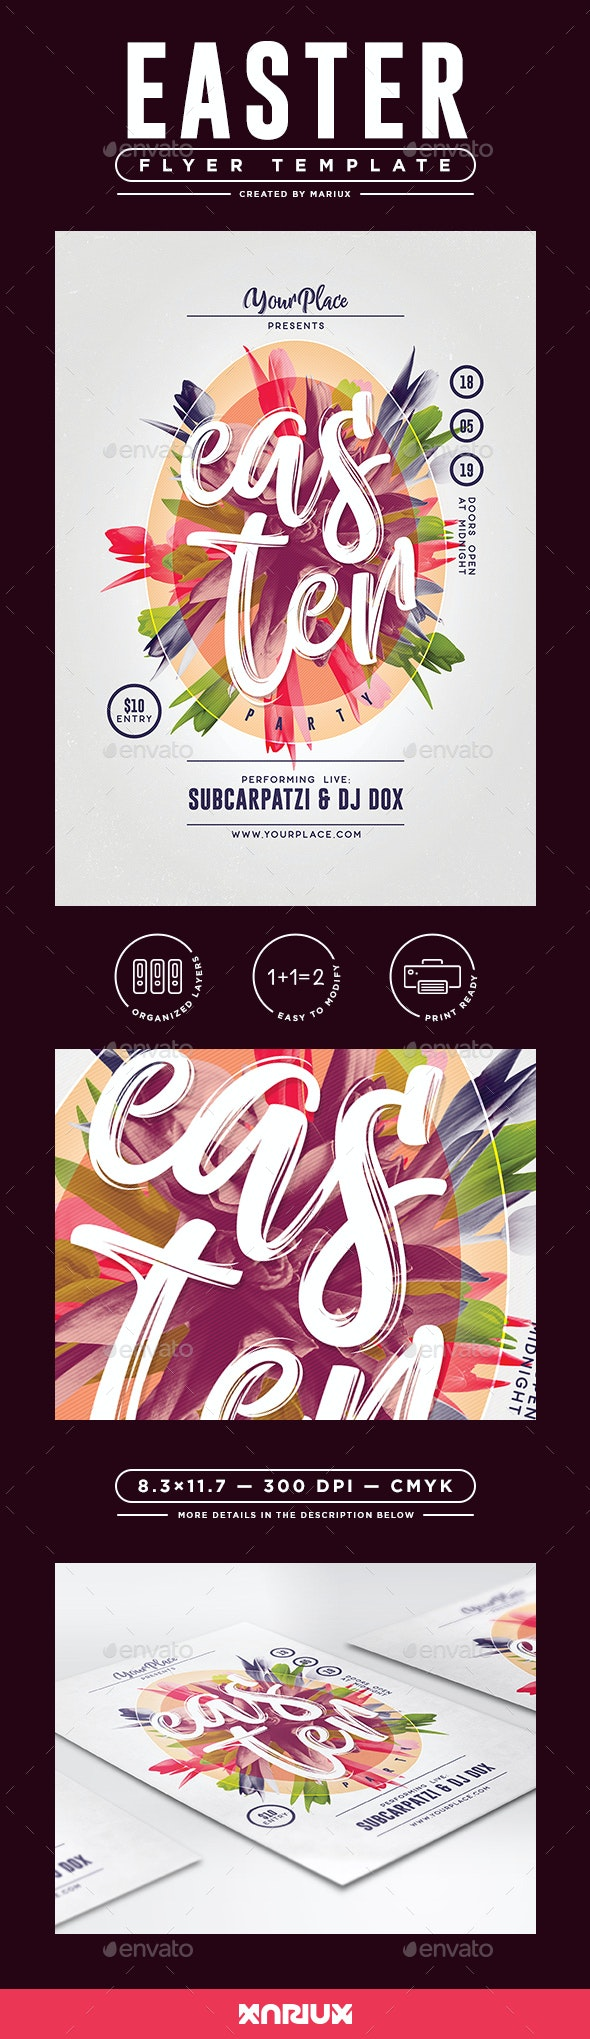 Easter Flyer/Poster Template - Events Flyers